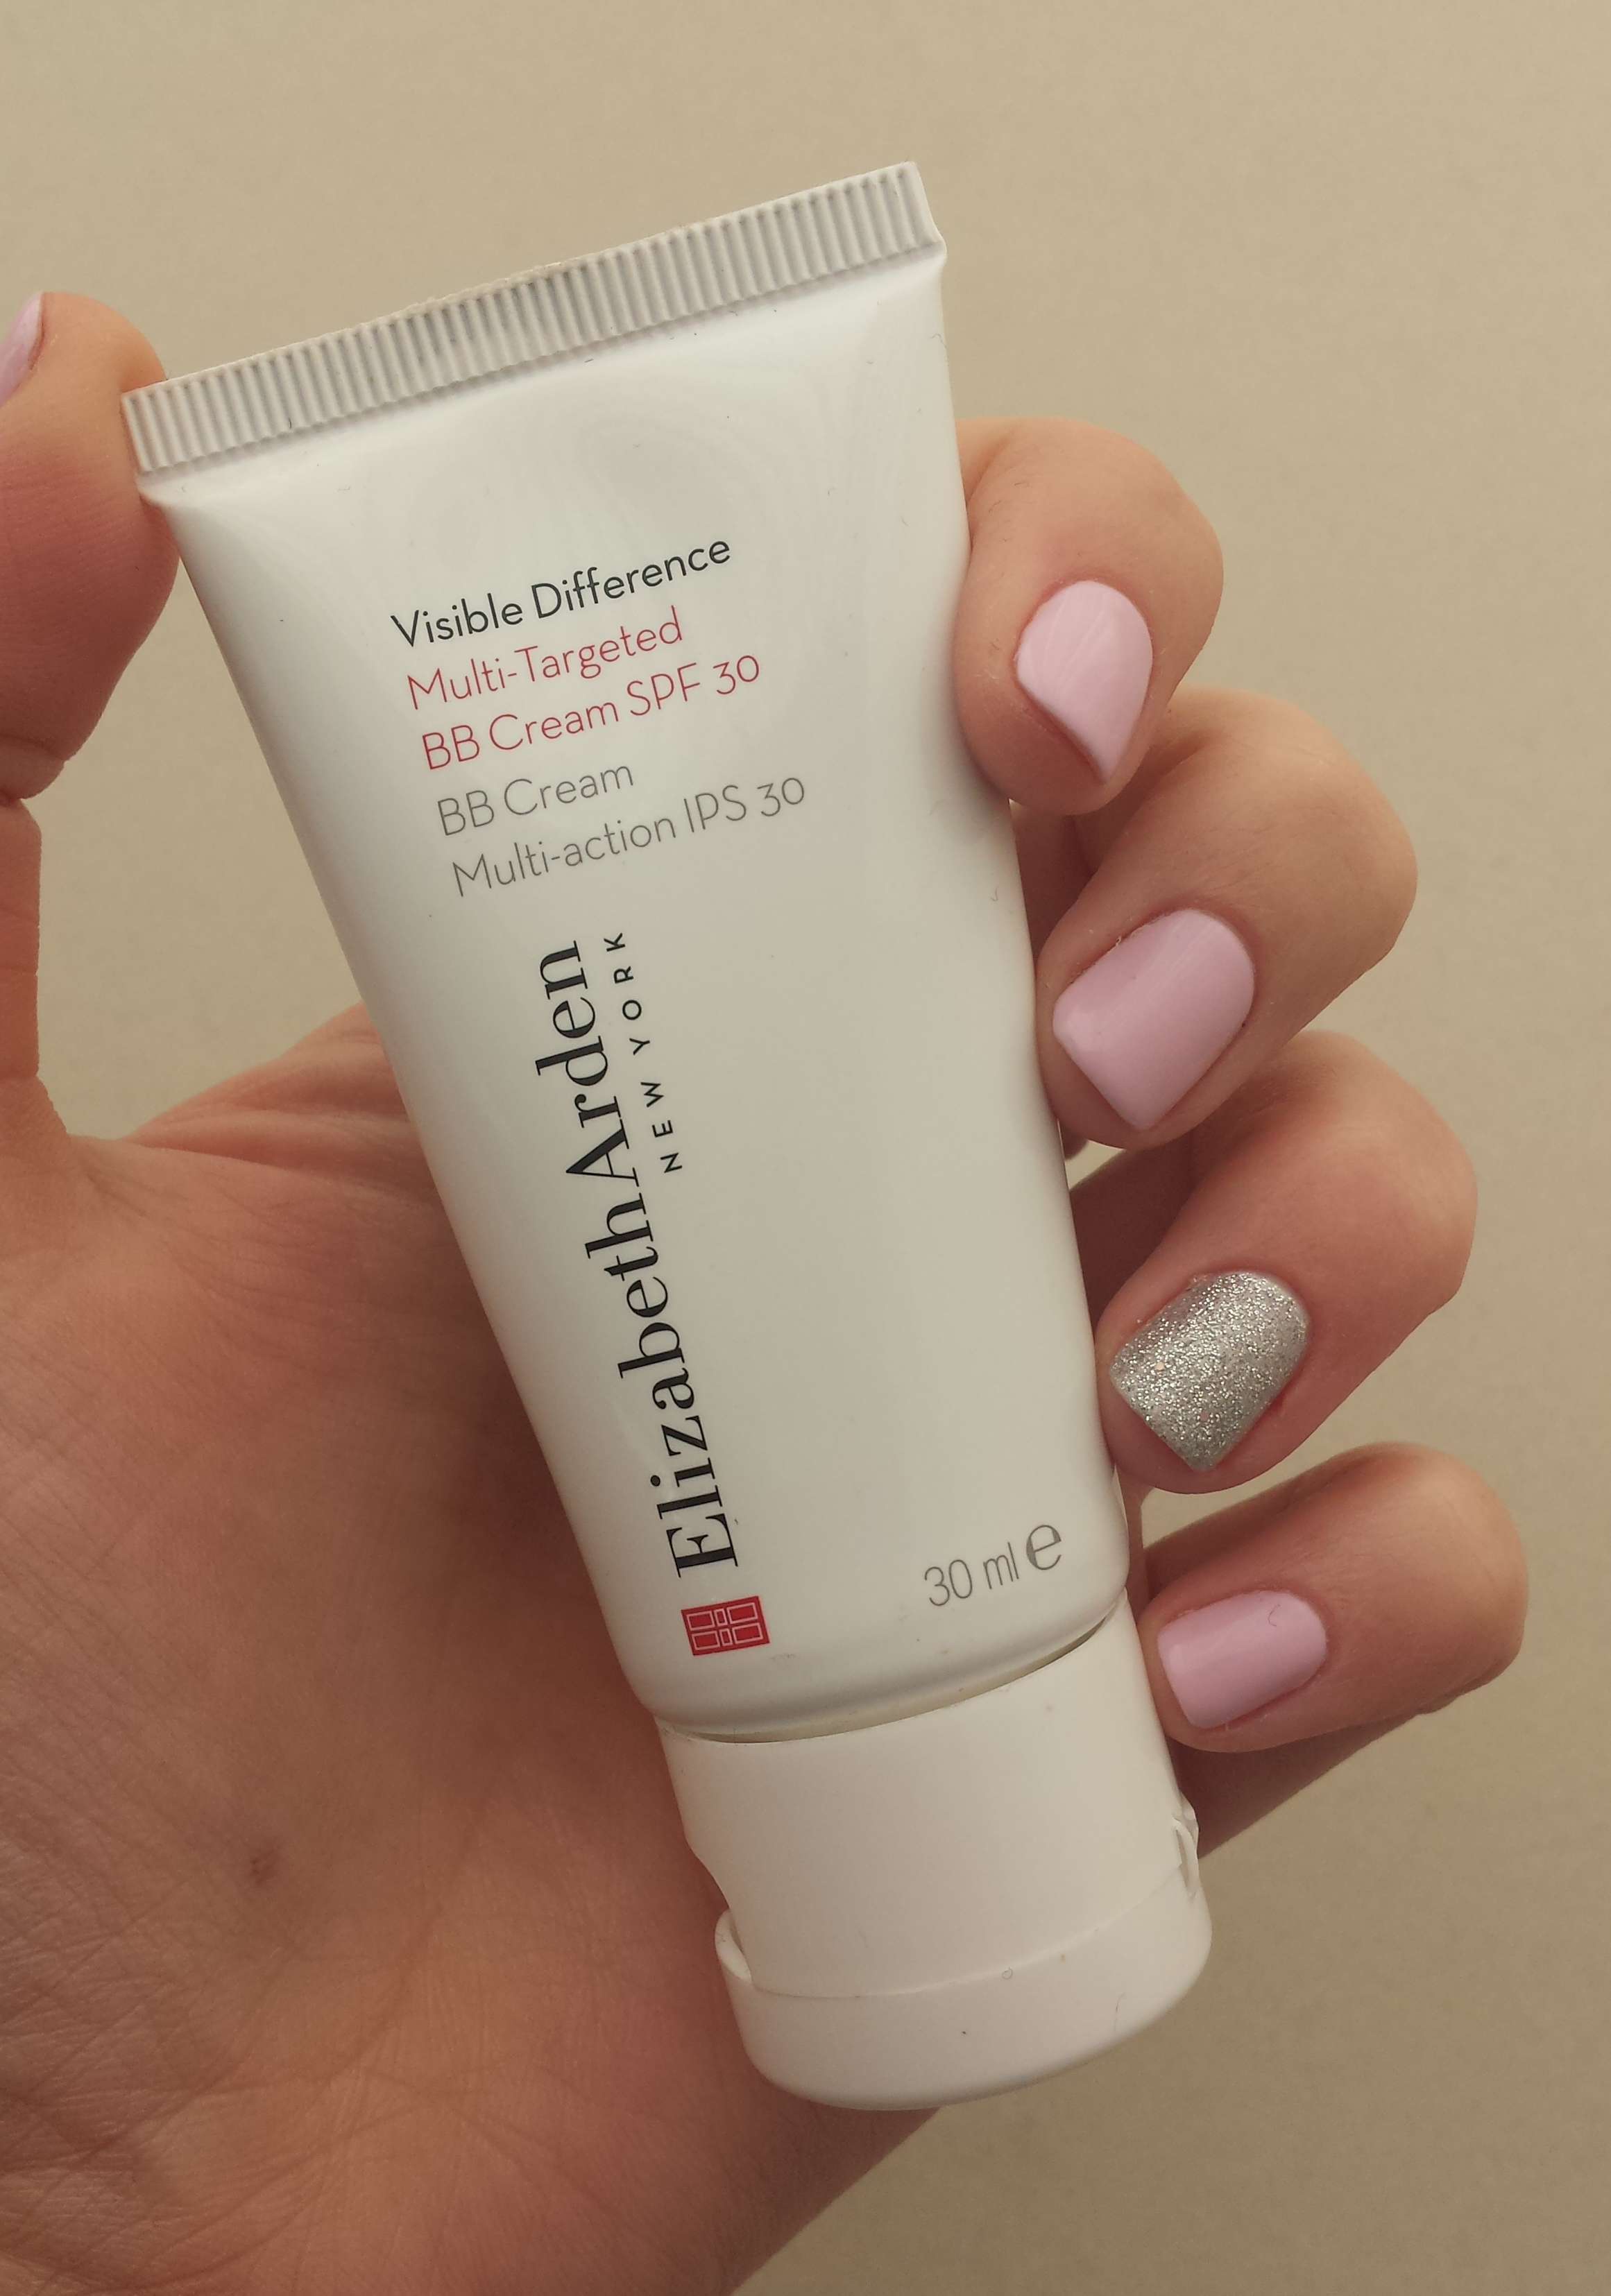 Visible Difference Multi-Targeted BB Cream by Elizabeth Arden #7